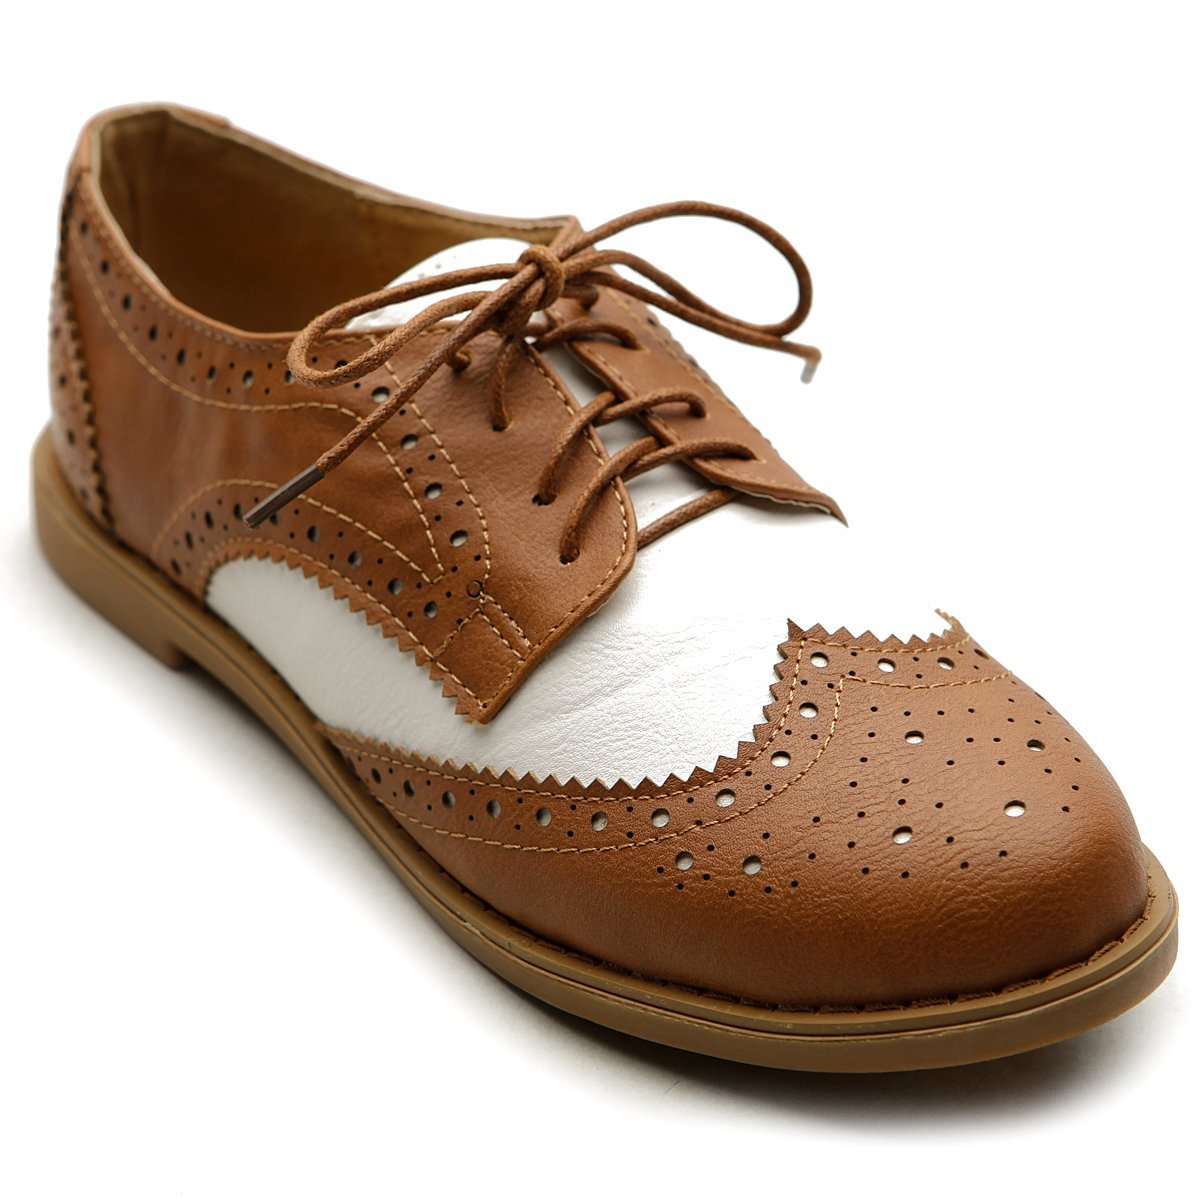 1940s Style Shoes Ollio Womens Flat Shoe Wingtip Lace Up Two Tone Oxford $25.99 AT vintagedancer.com